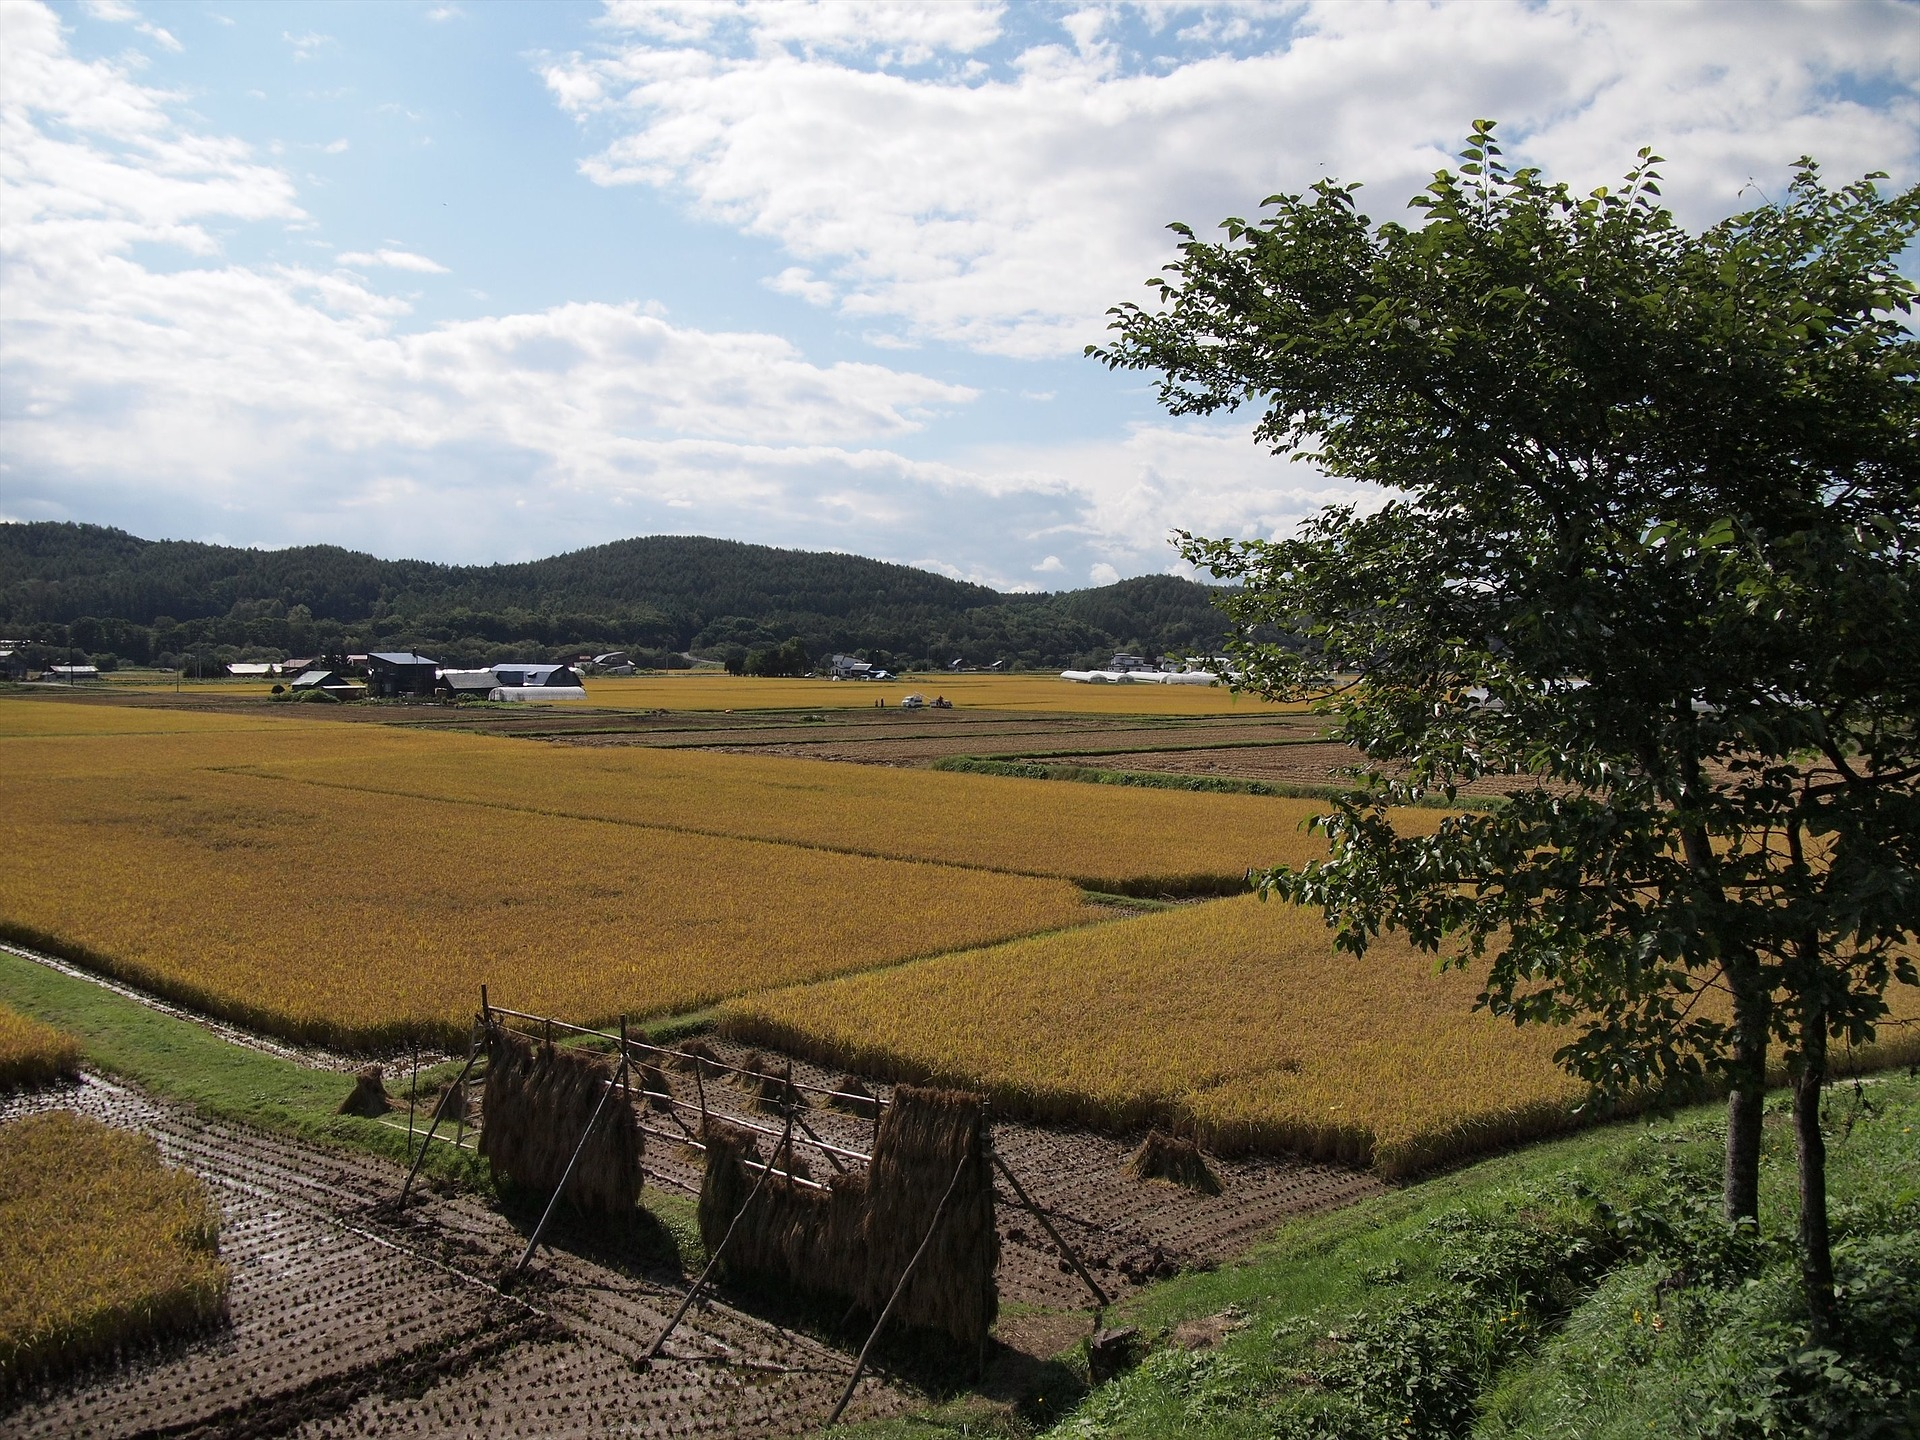 yamadas-rice-fields-978738_1920